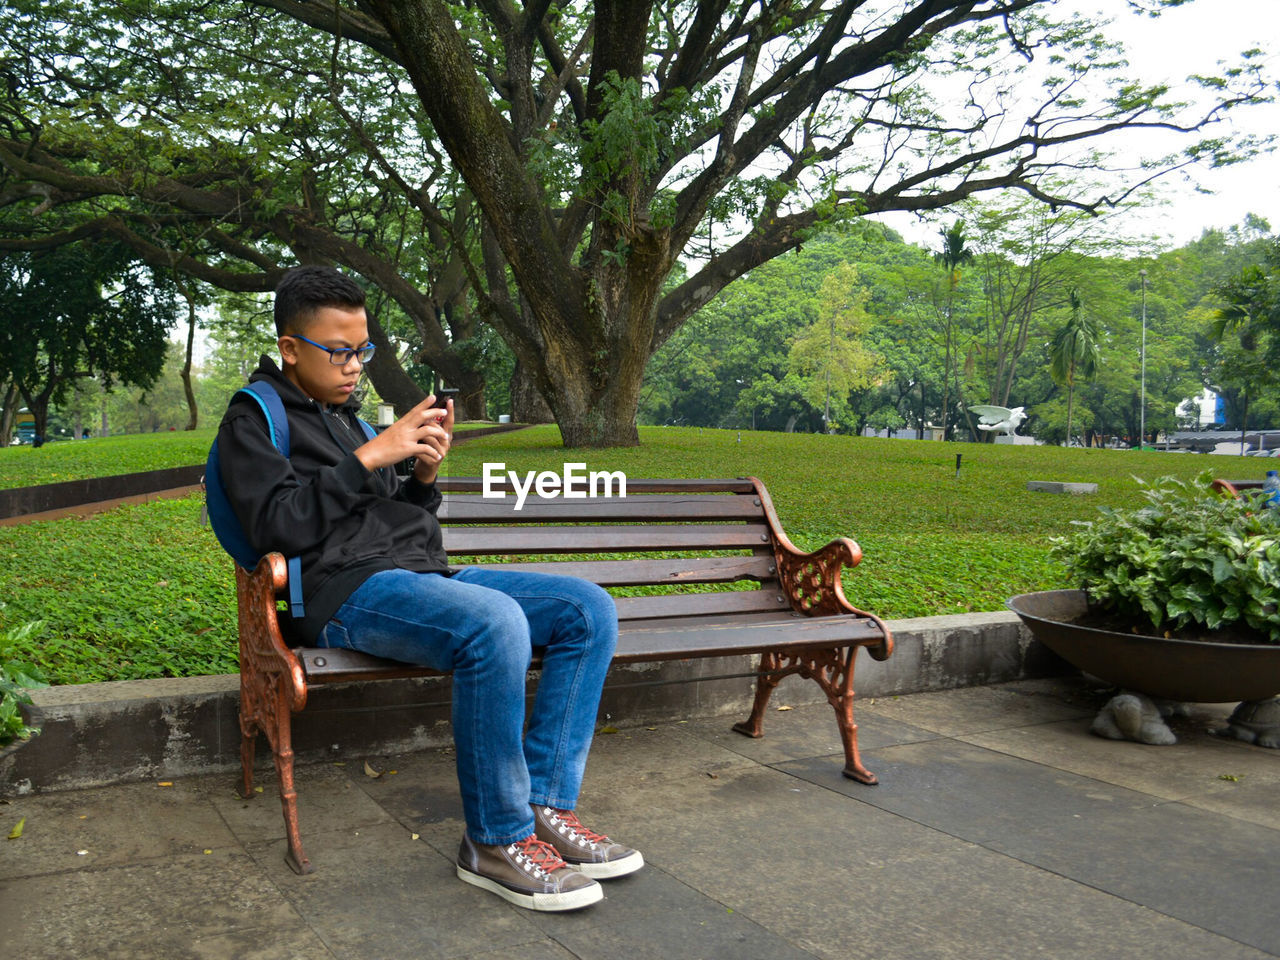 Boy using mobile phone while sitting on bench at park